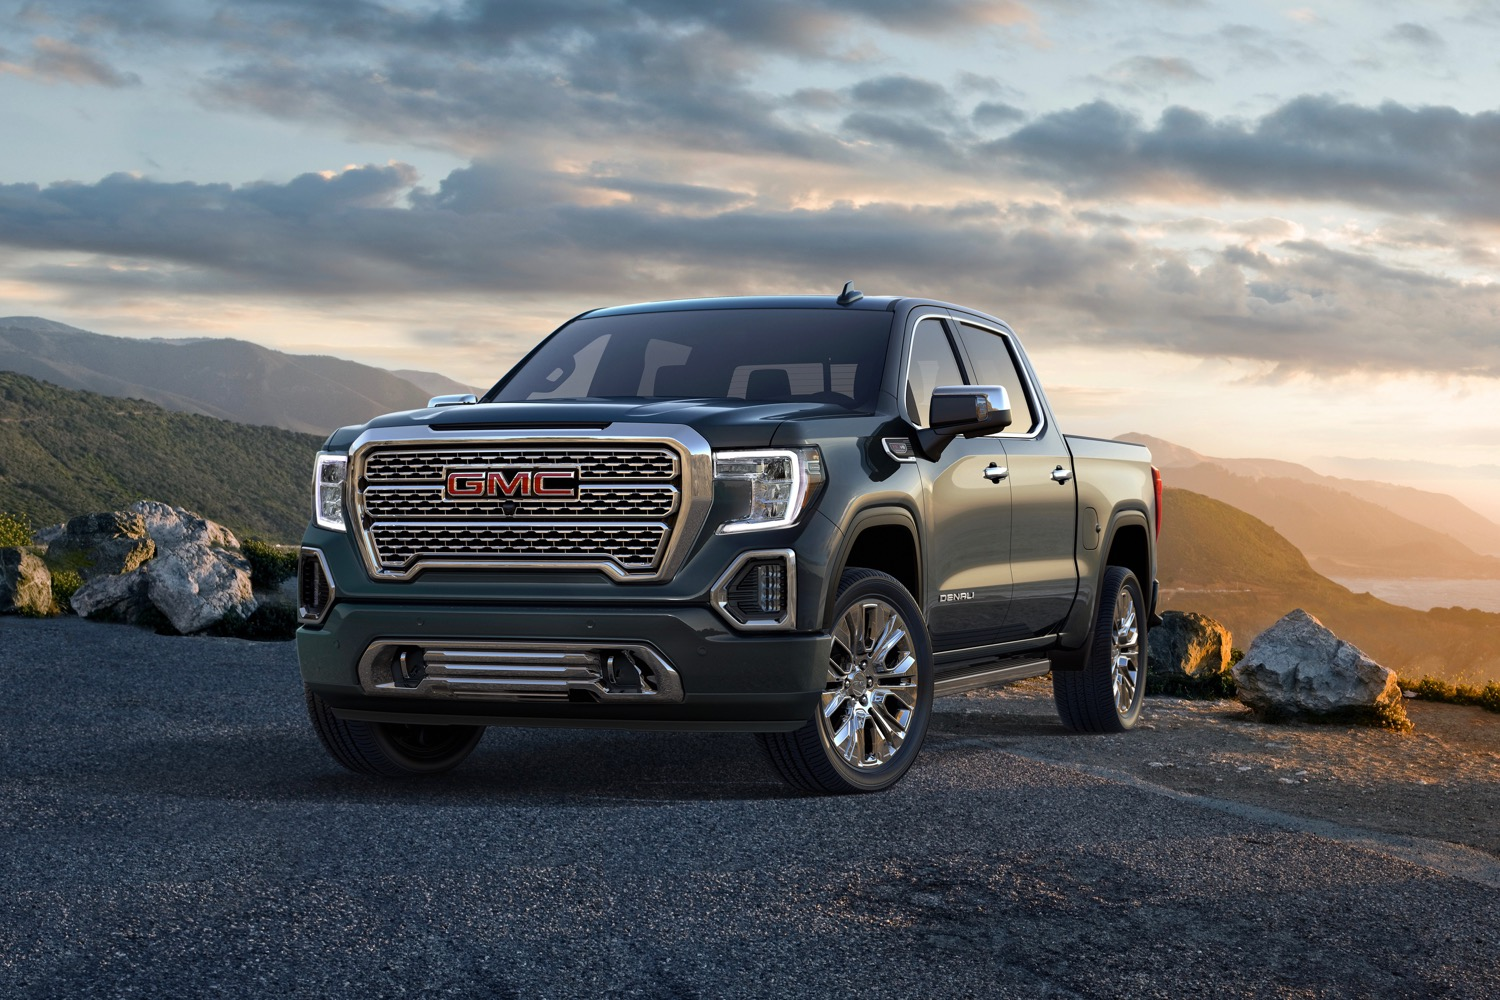 2019 Best Trucks The Best Trucks for 2019 | Digital Trends